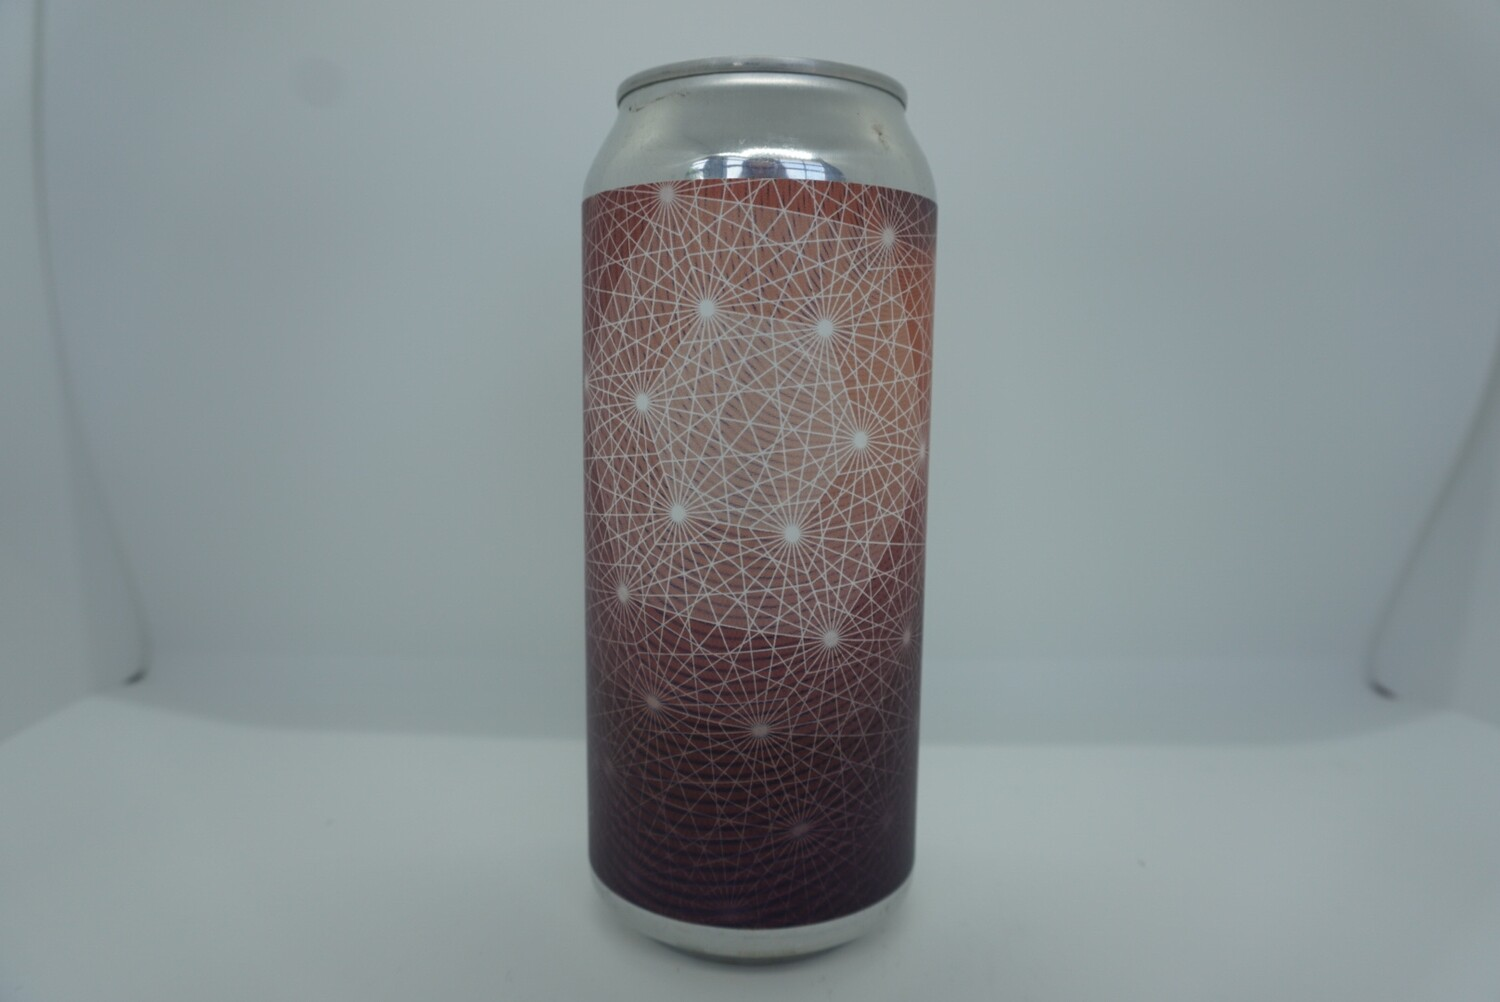 Barreled Souls - Continuum - DIPA - 8% ABV - 16oz Can